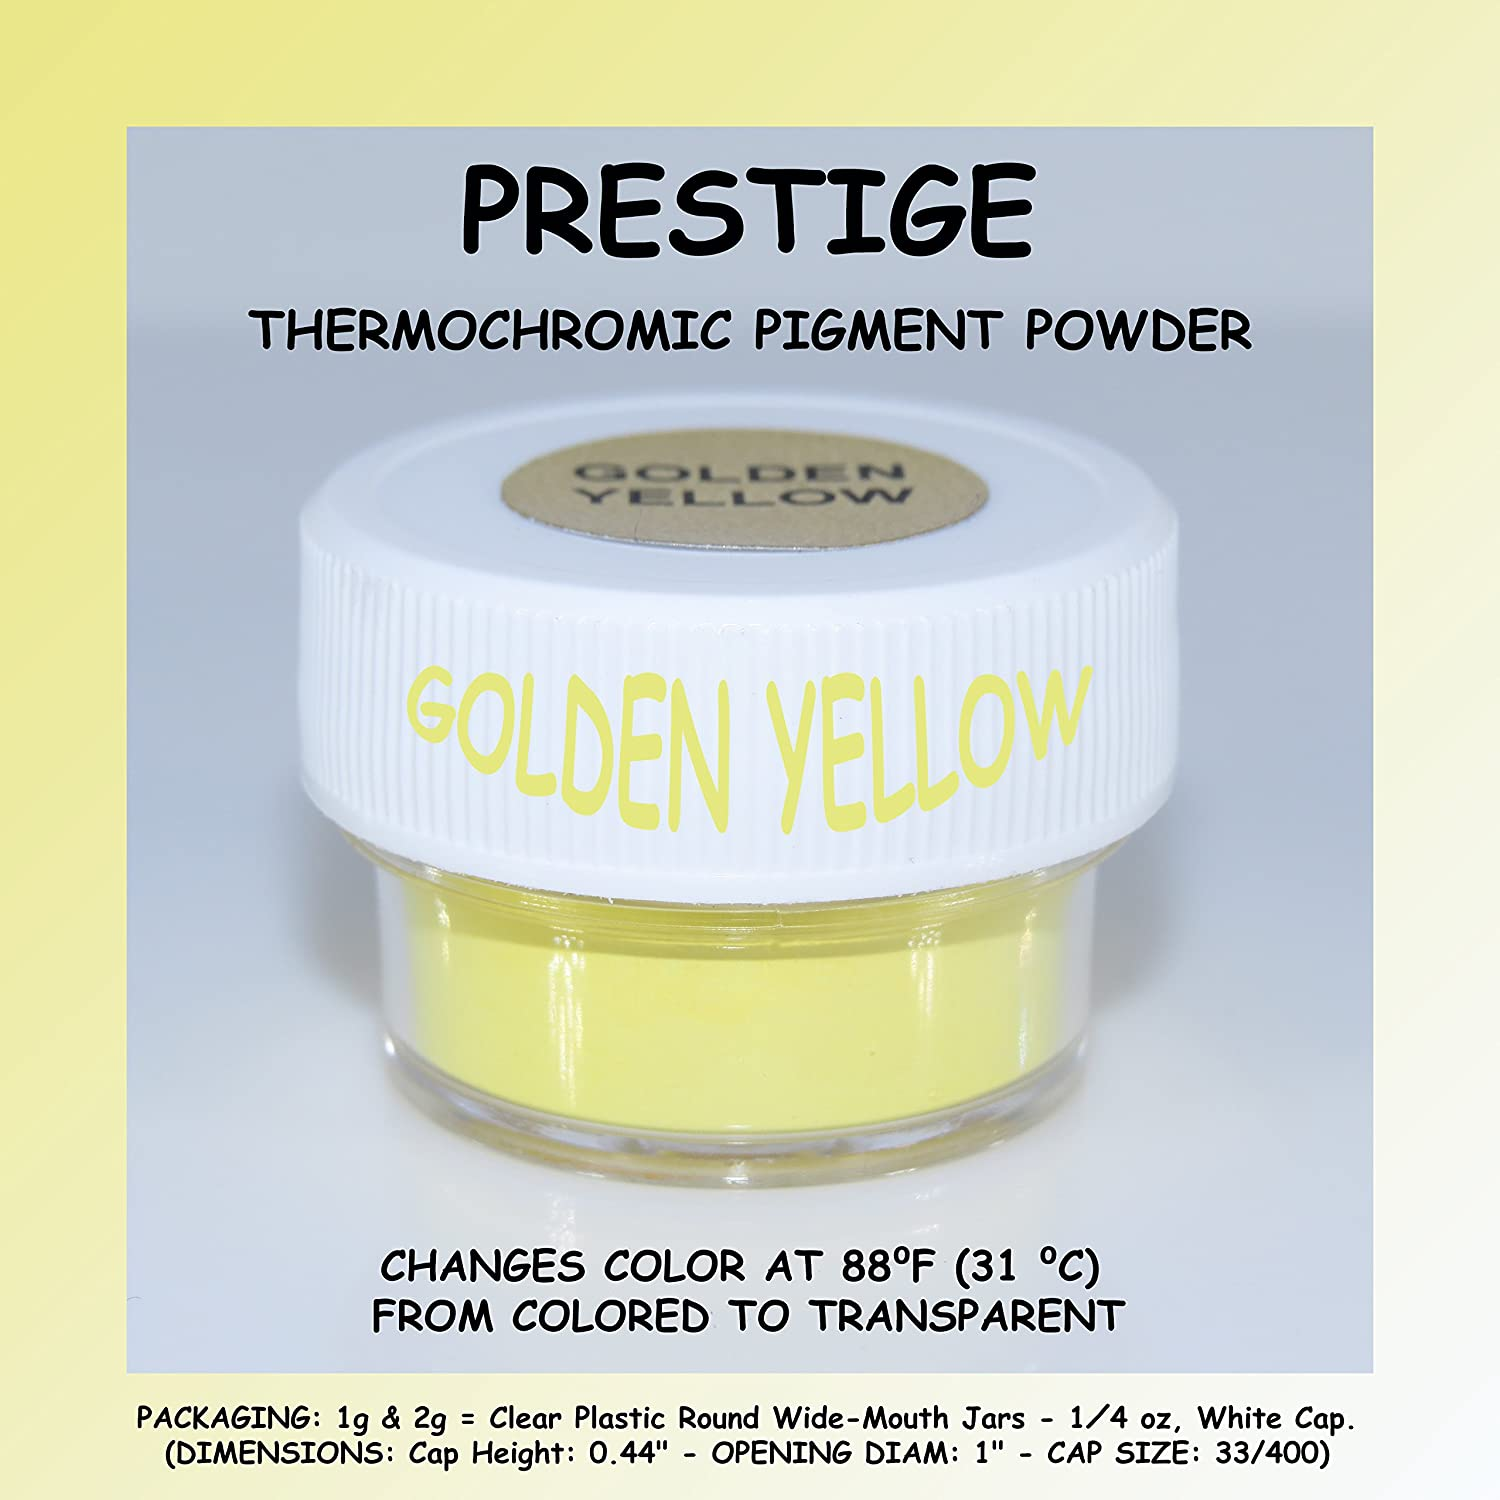 PRESTIGE THERMOCHROMIC PIGMENT THAT CHANGES COLOR AT 88⁰F(31 ⁰C) FROM COLORED TO TRANSPARENT (Colored Below The Temperature, Transparent Above) Perfect For Color Changing Slime! (10g, BLACK) UNIGLOW PRODUCTS LLC.